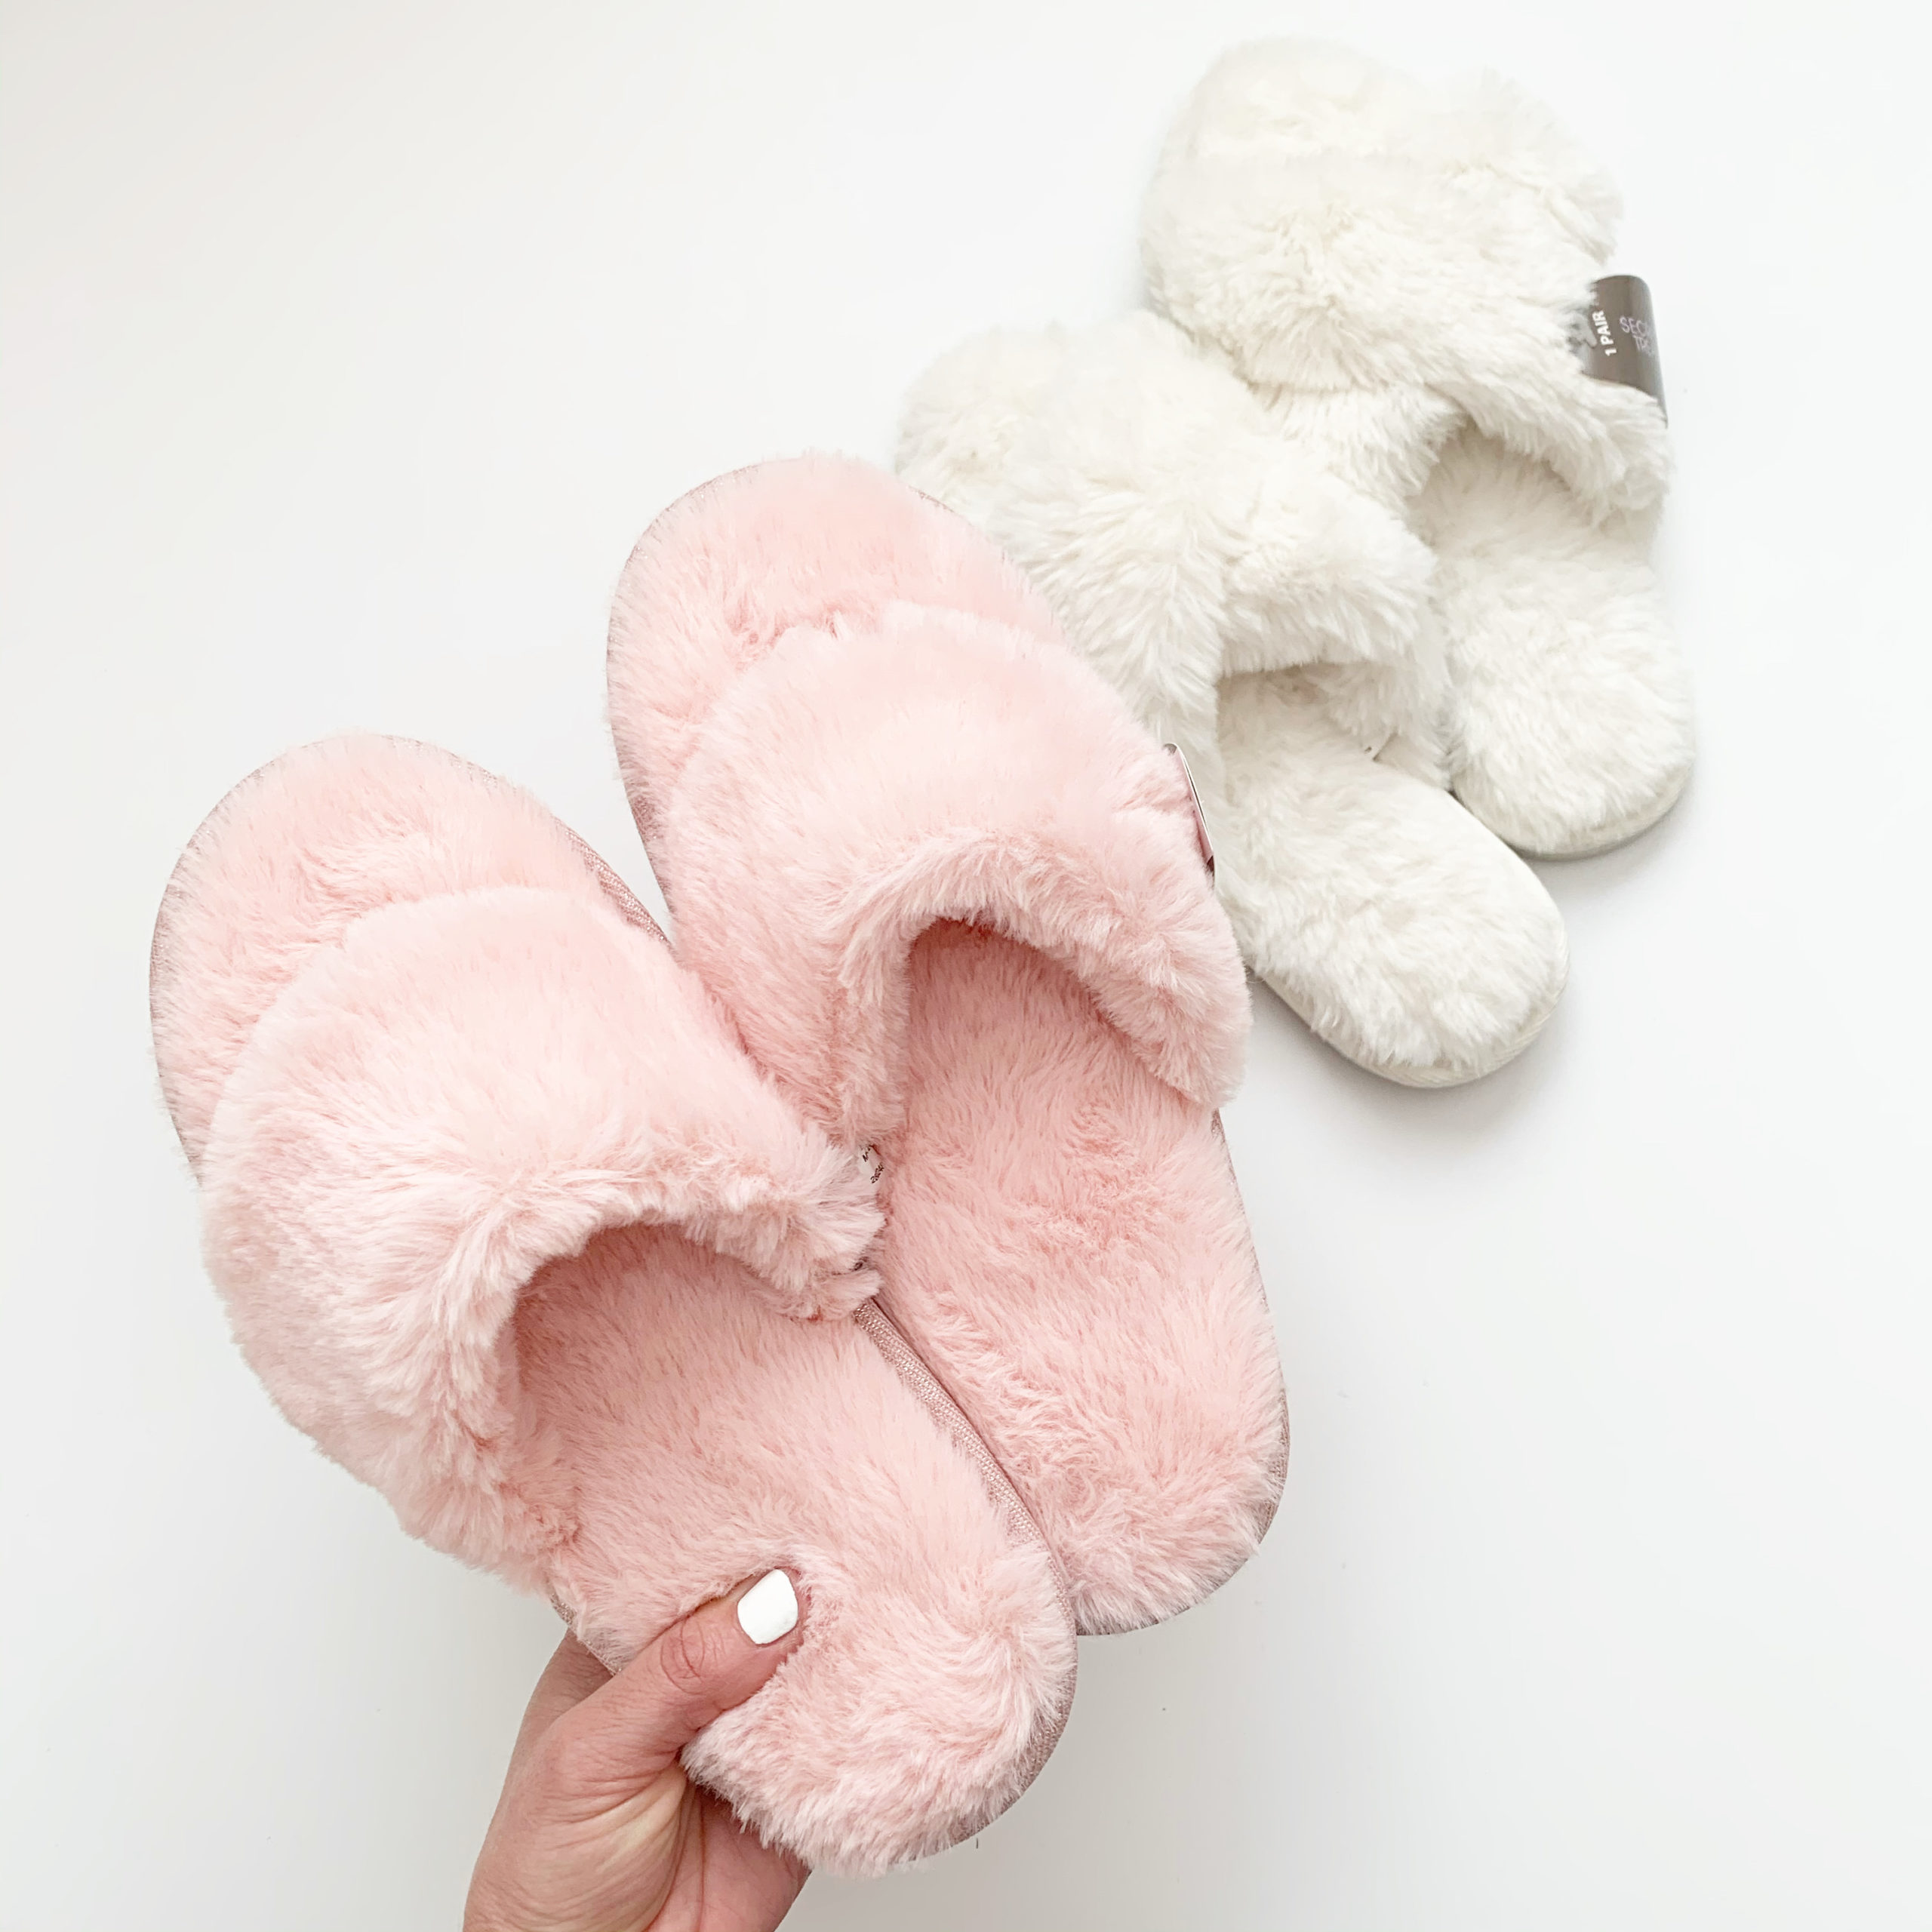 plush fuzzy slippers at walmart